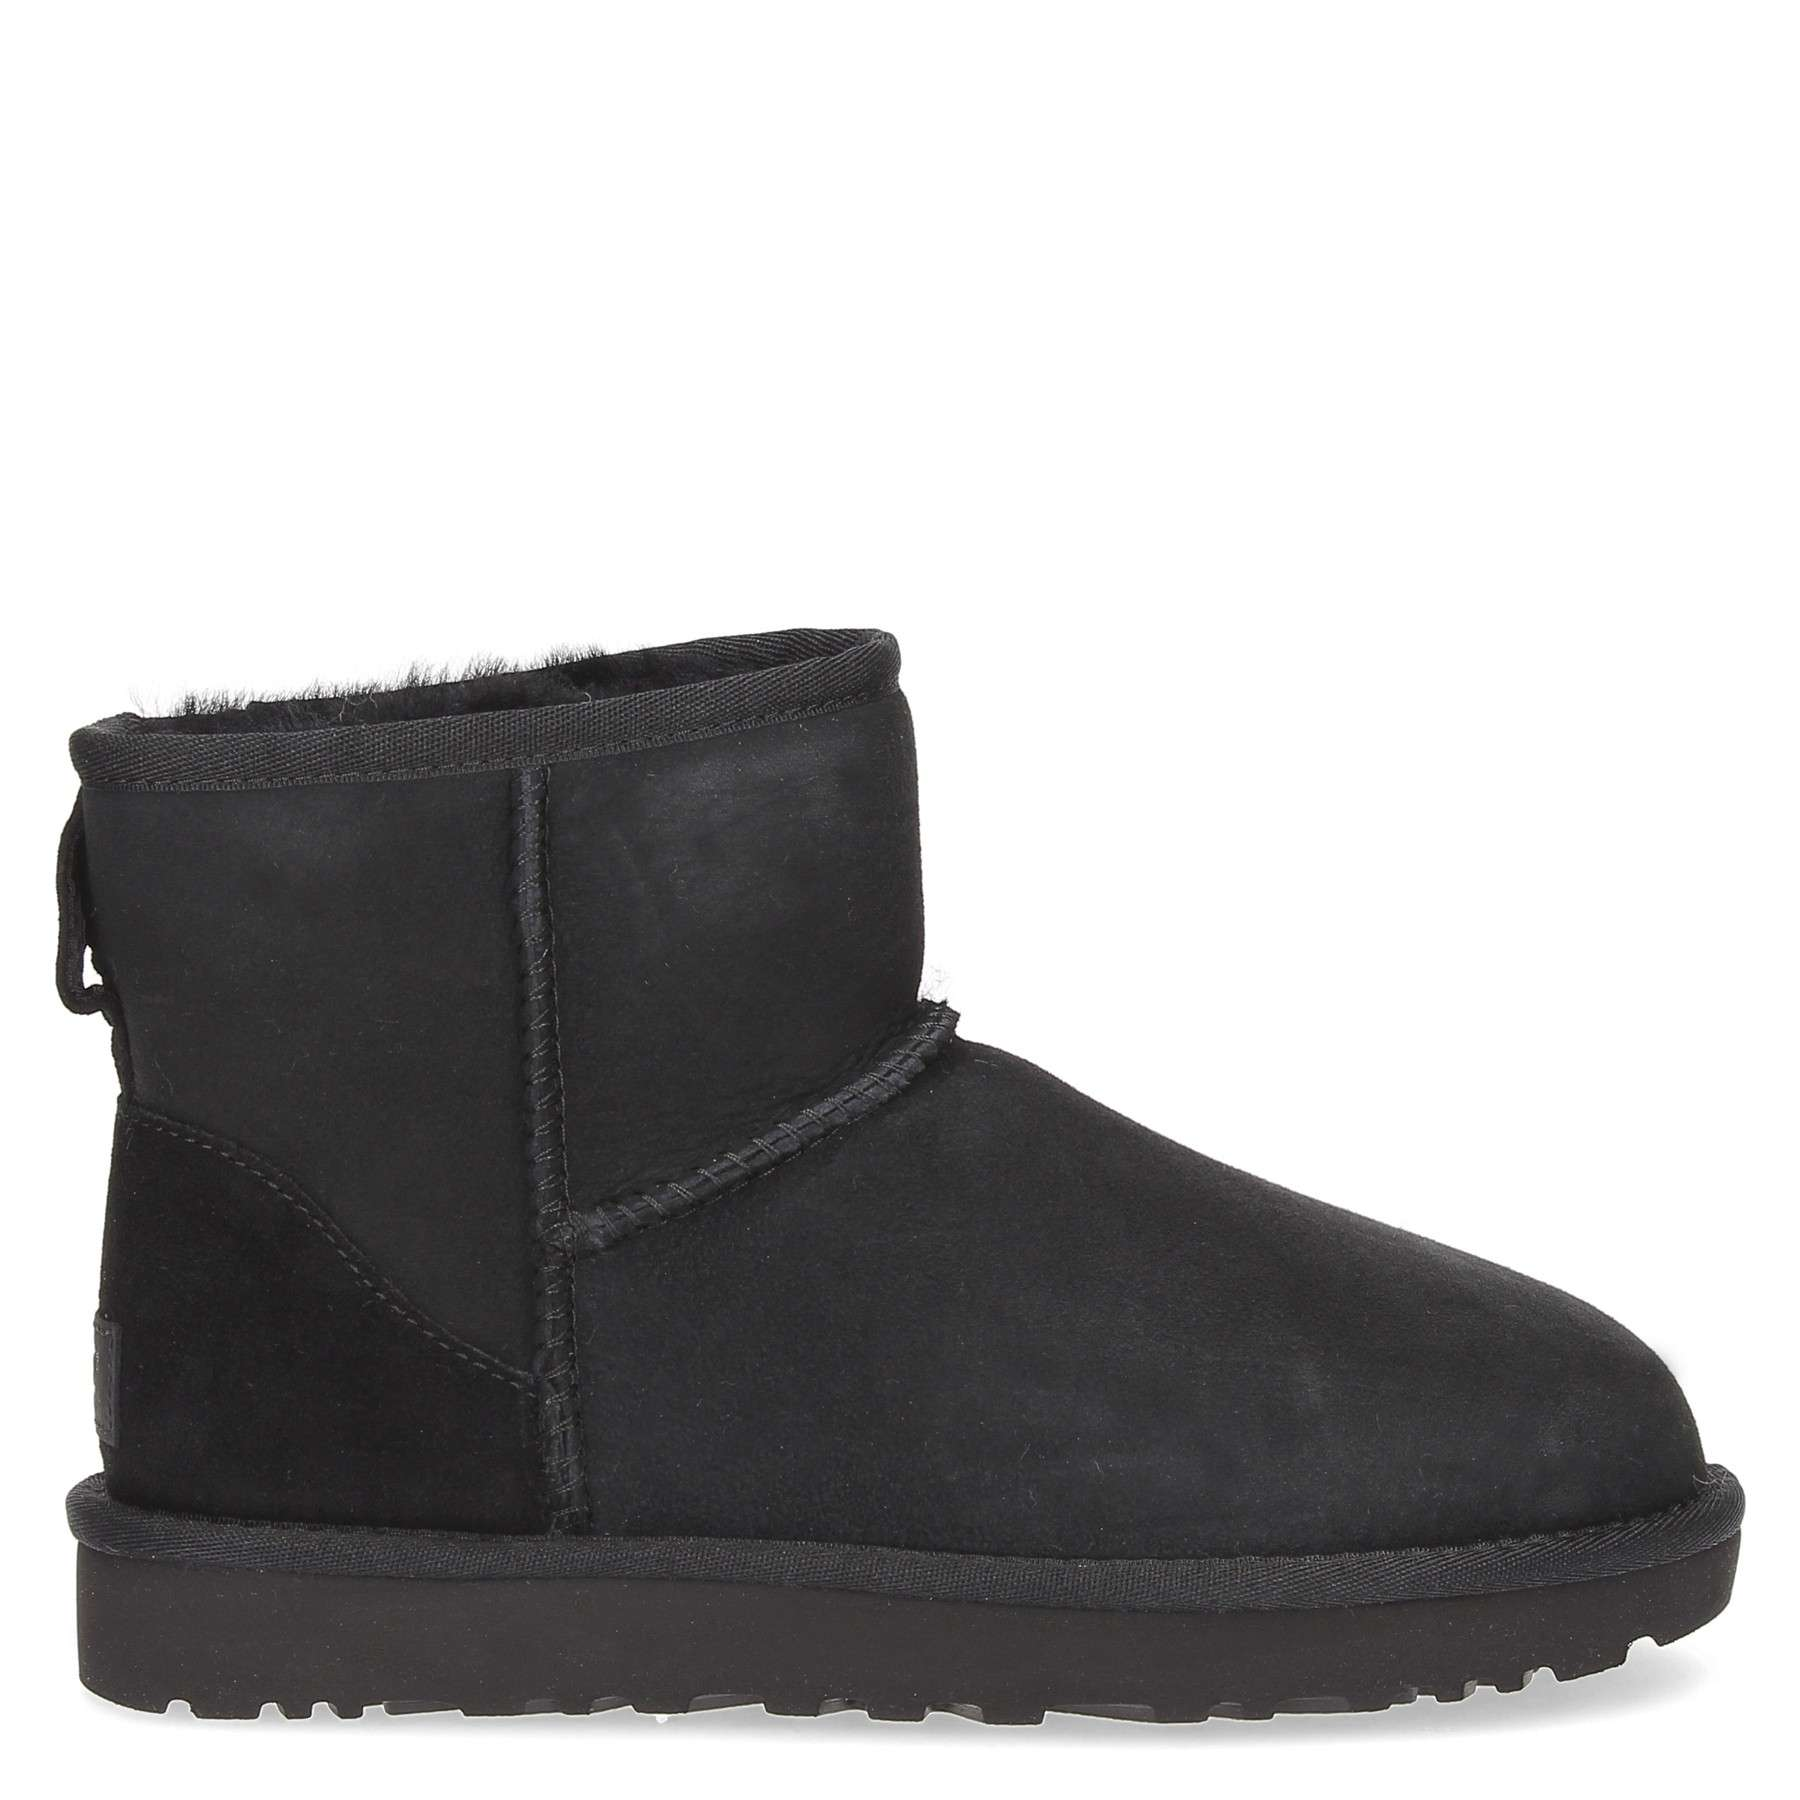 https://www.parmax.com/media/catalog/product/a/i/AI-outlet_parmax-stivaletto-donna-Ugg-1016222-A_1_7.jpg